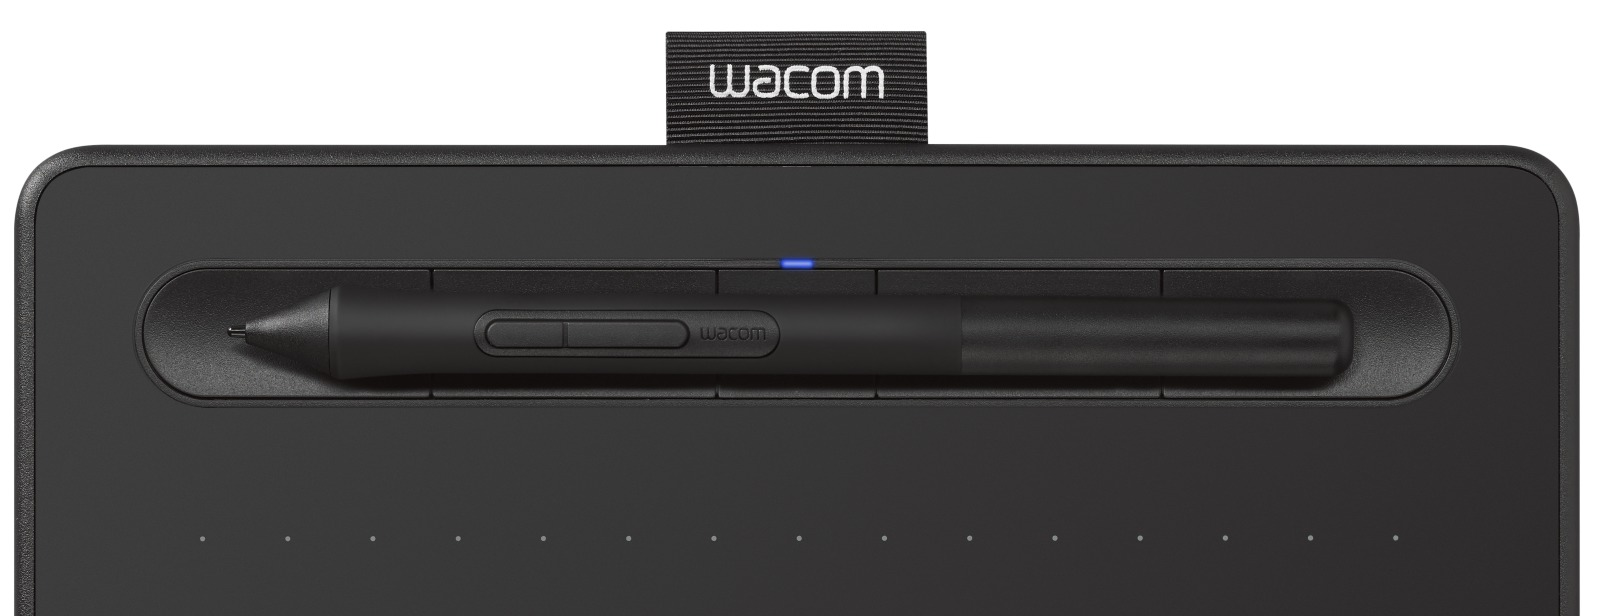 Wacom Intuos Small Bluetooth Black image